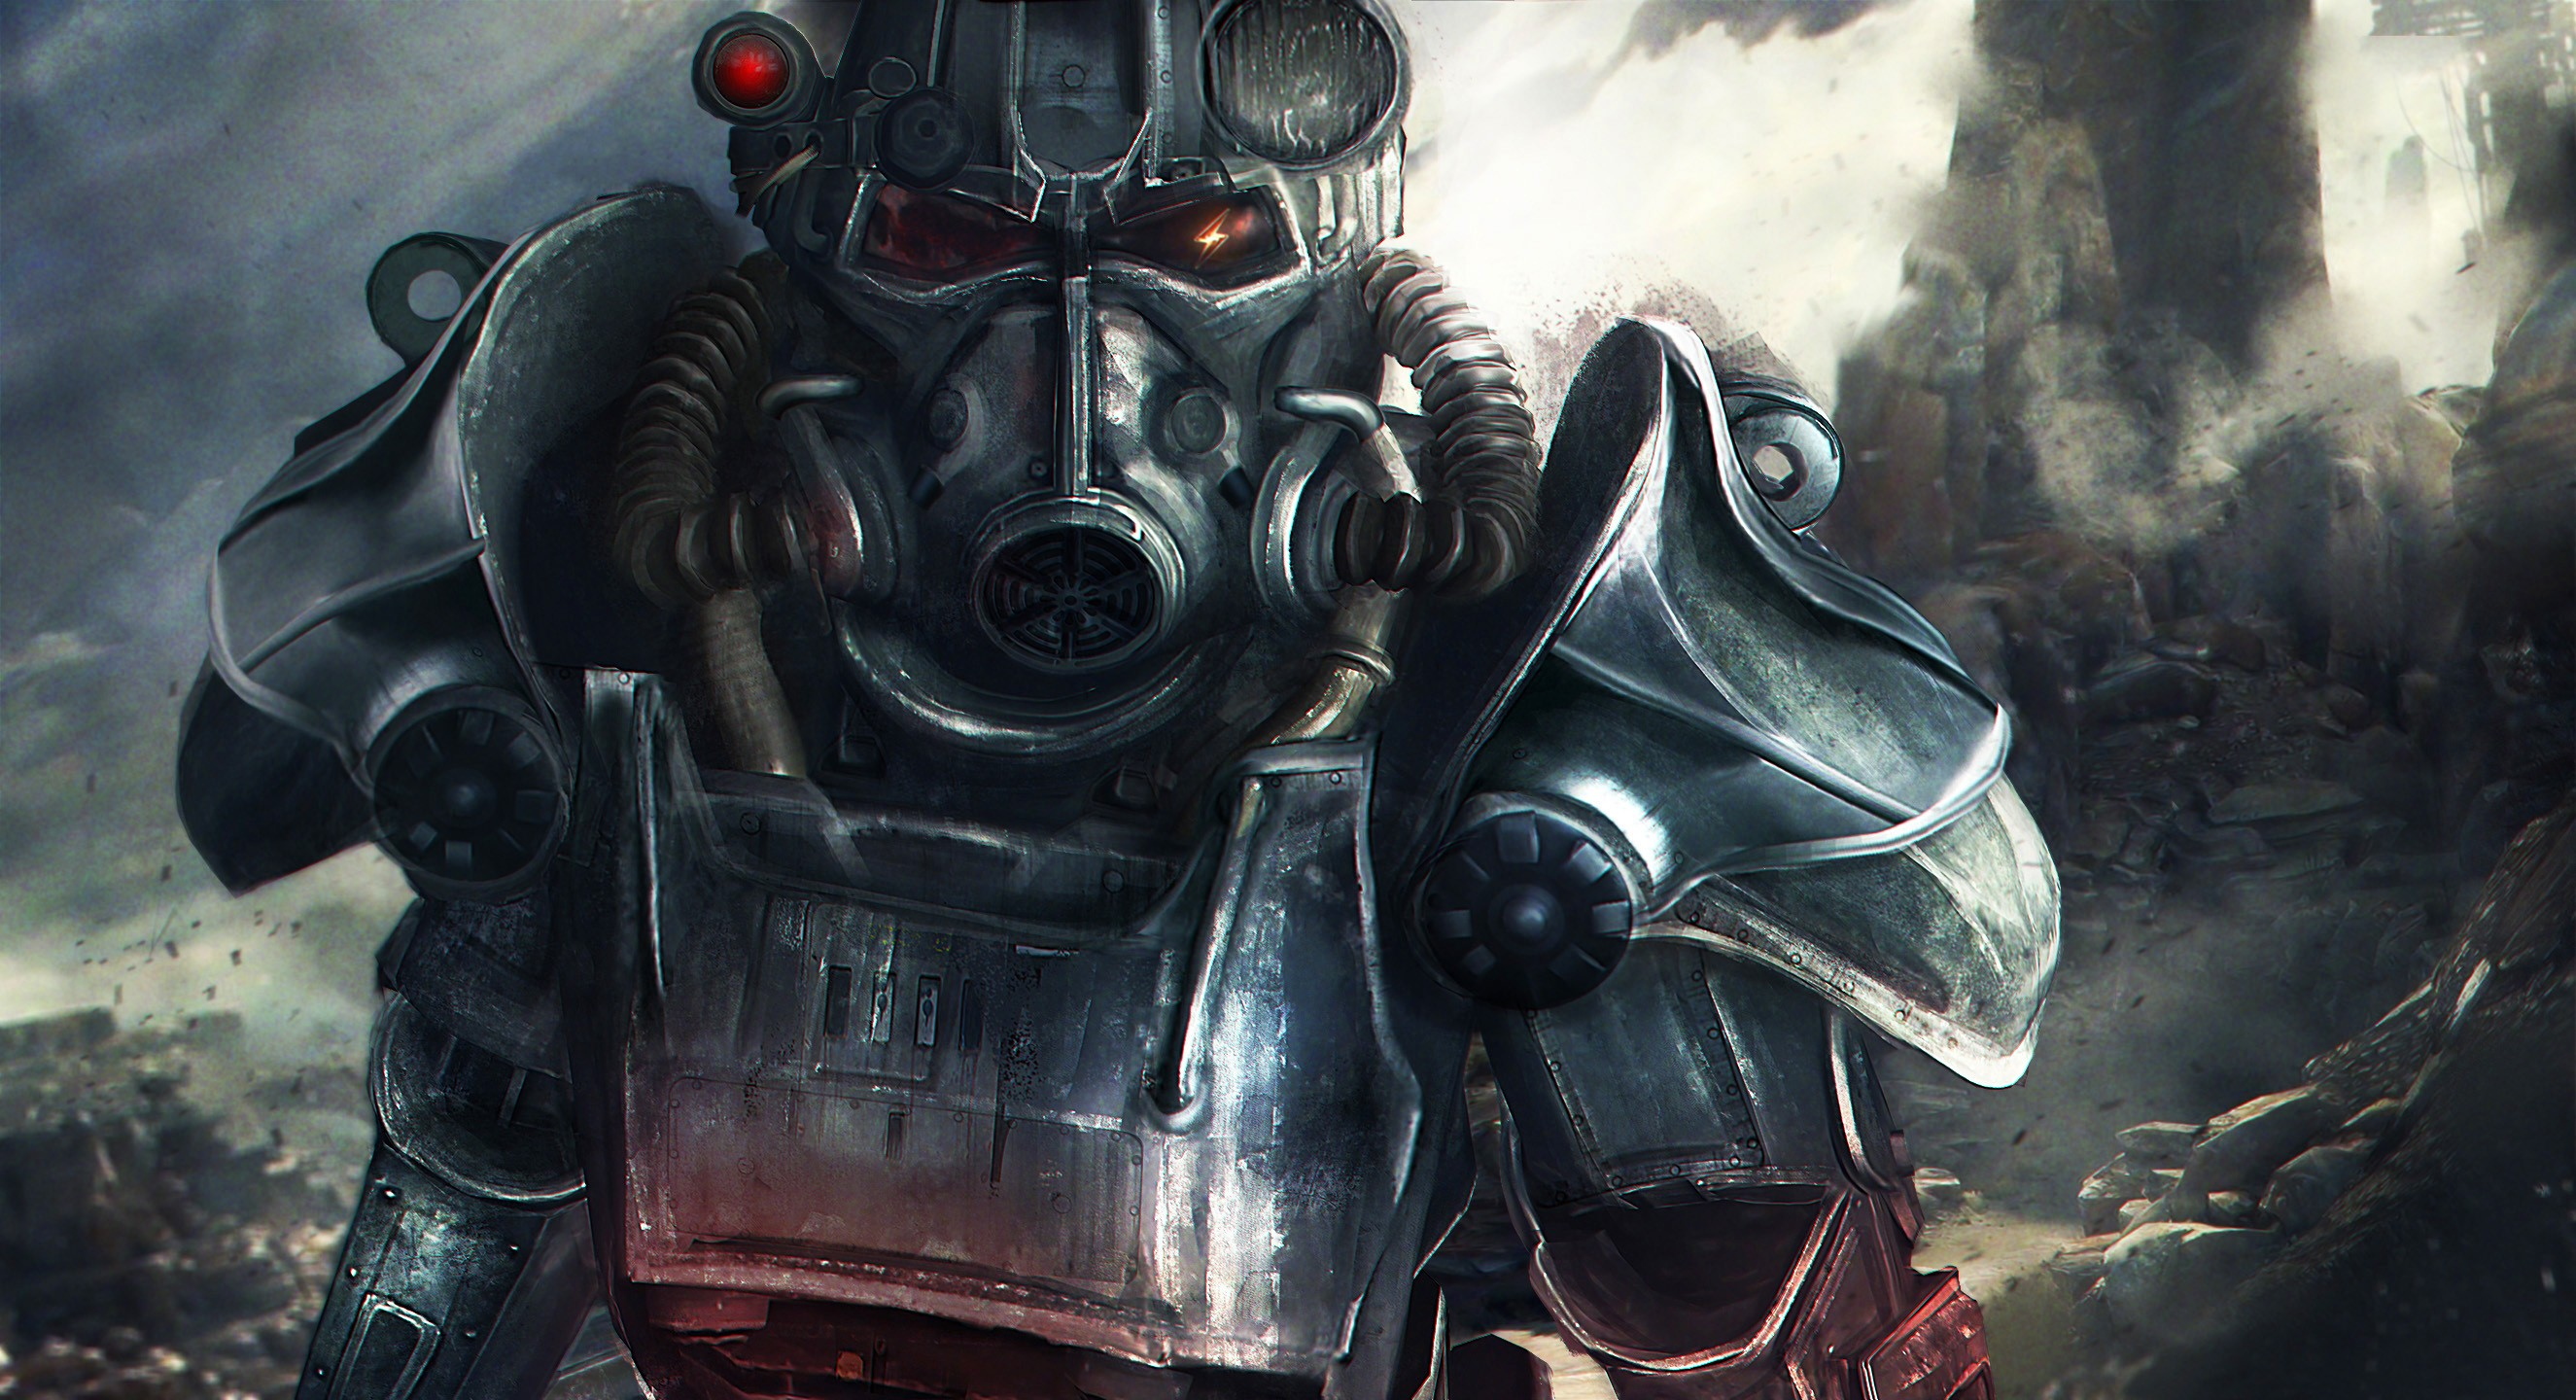 Apocalyptic Brotherhood Of Steel Fallout 4 Nuclear Bethesda